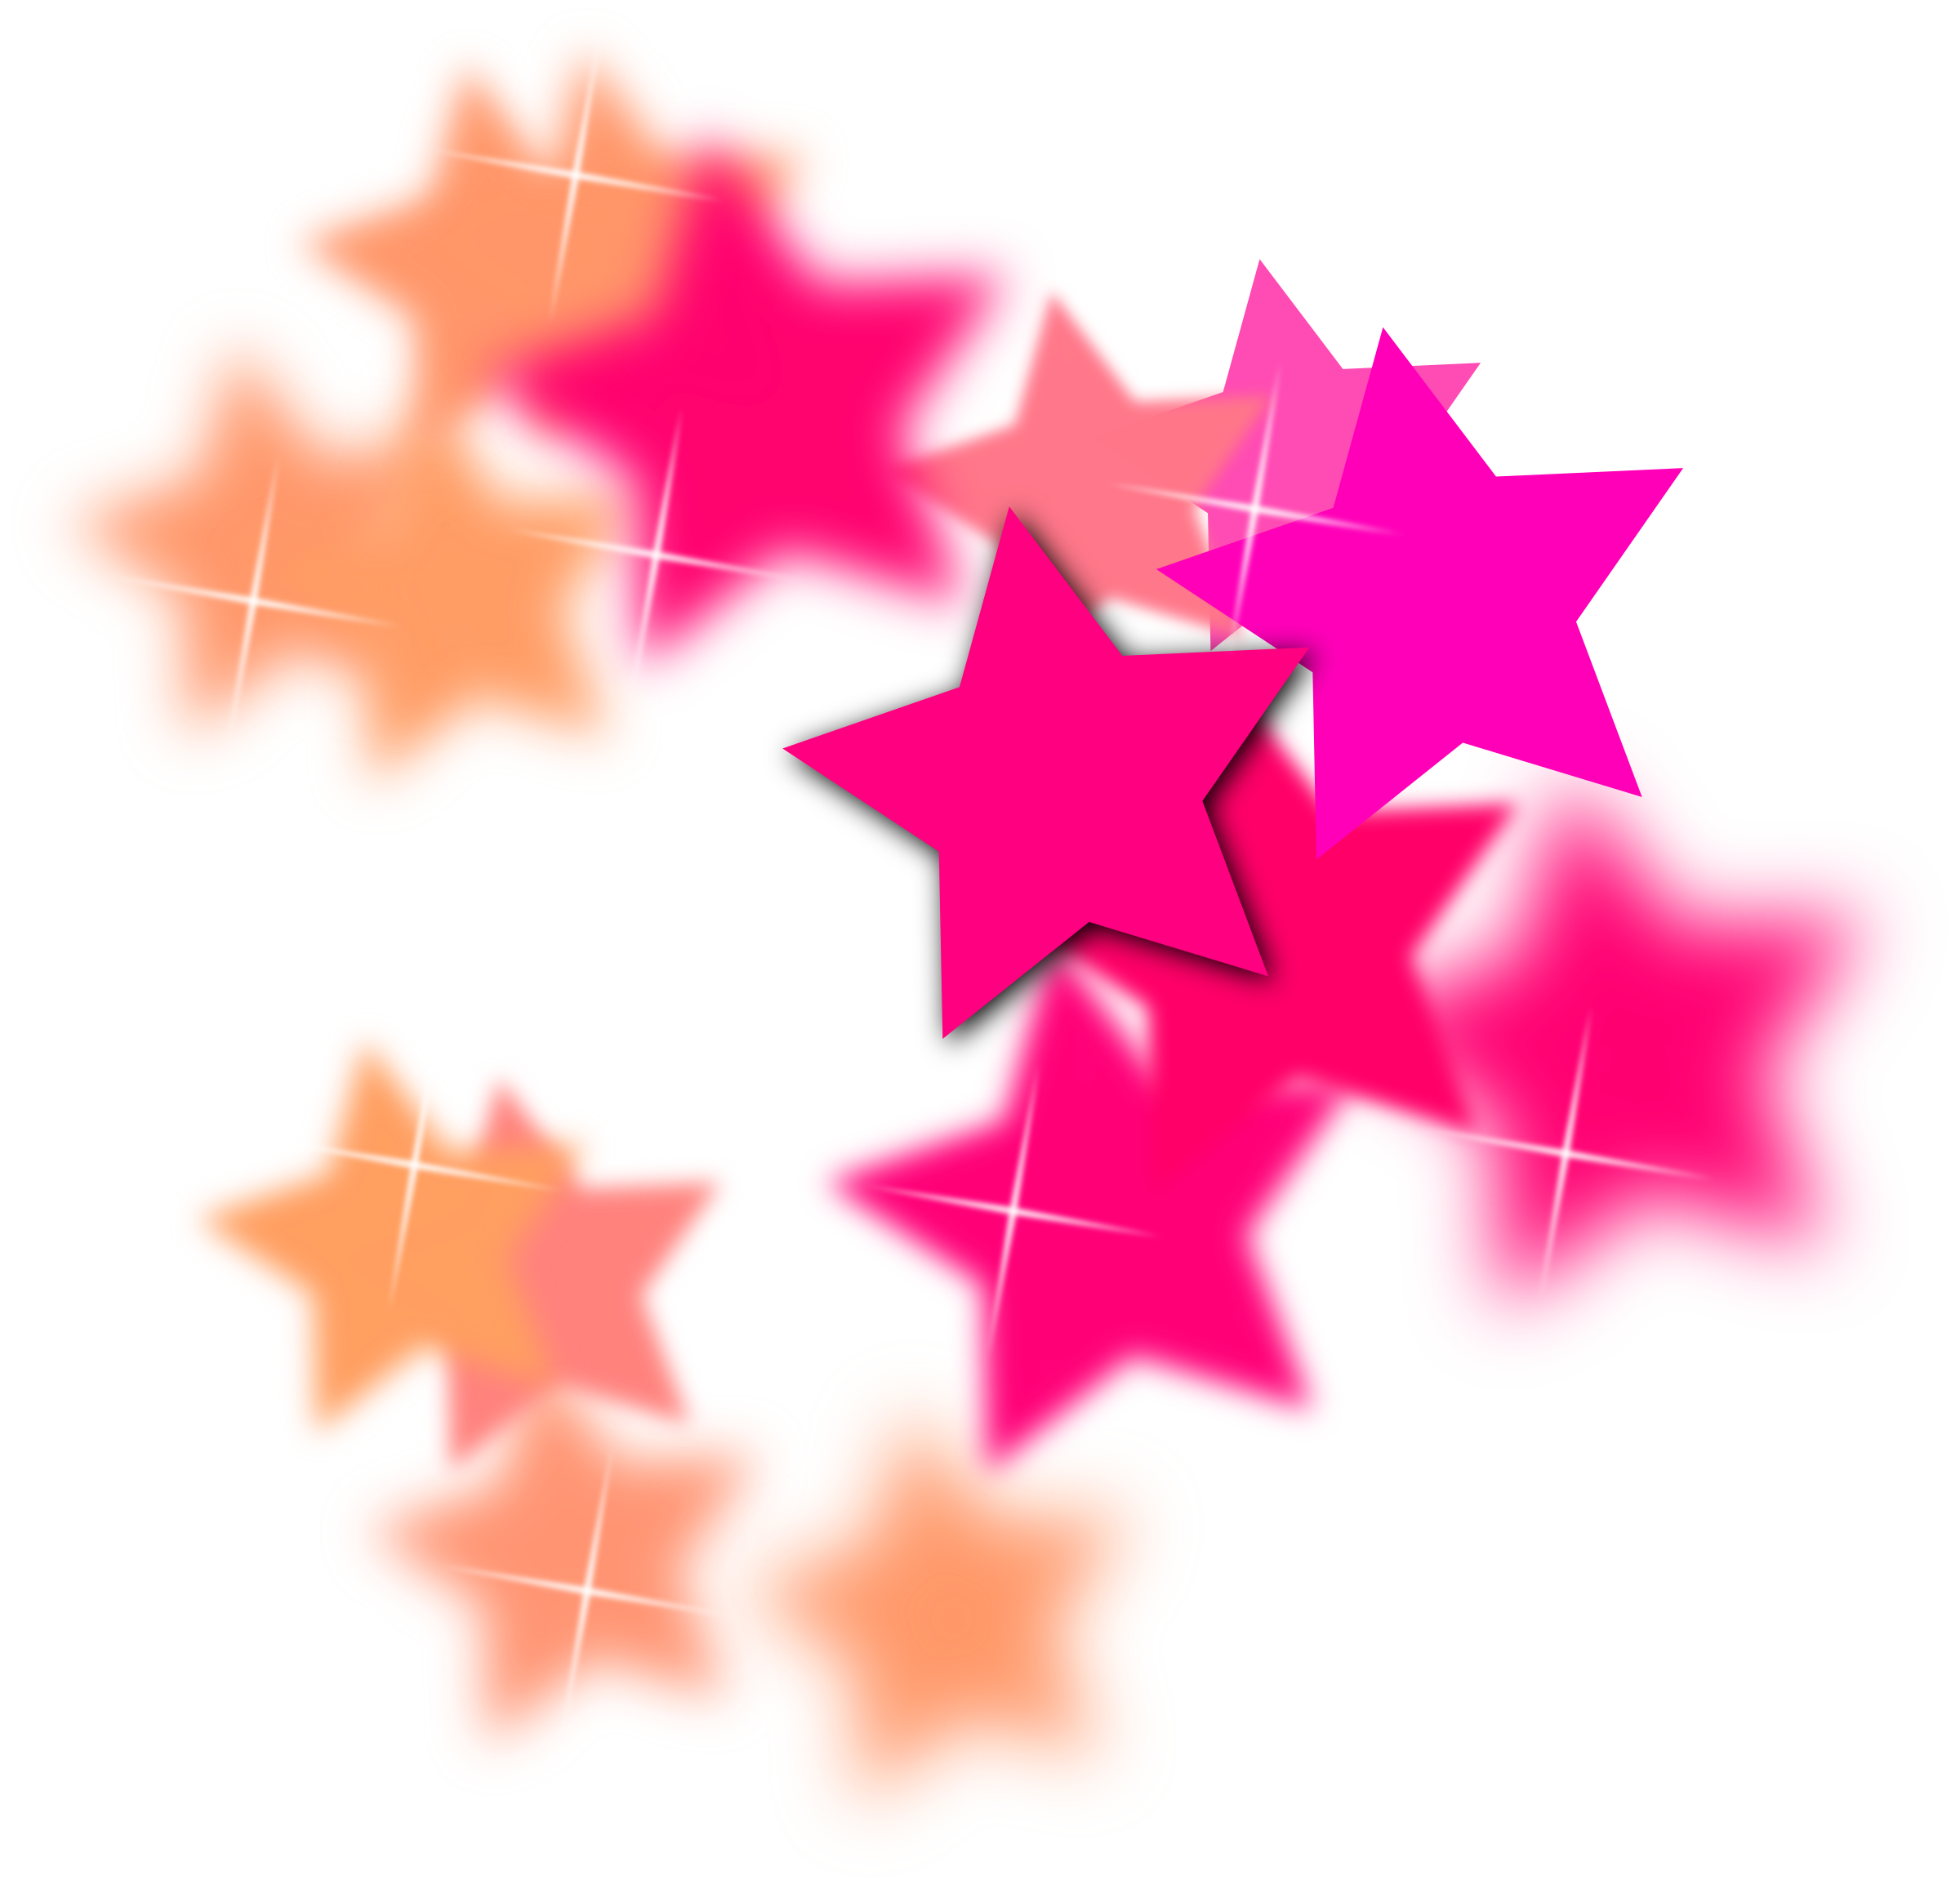 Star design png. Flourish icons free and